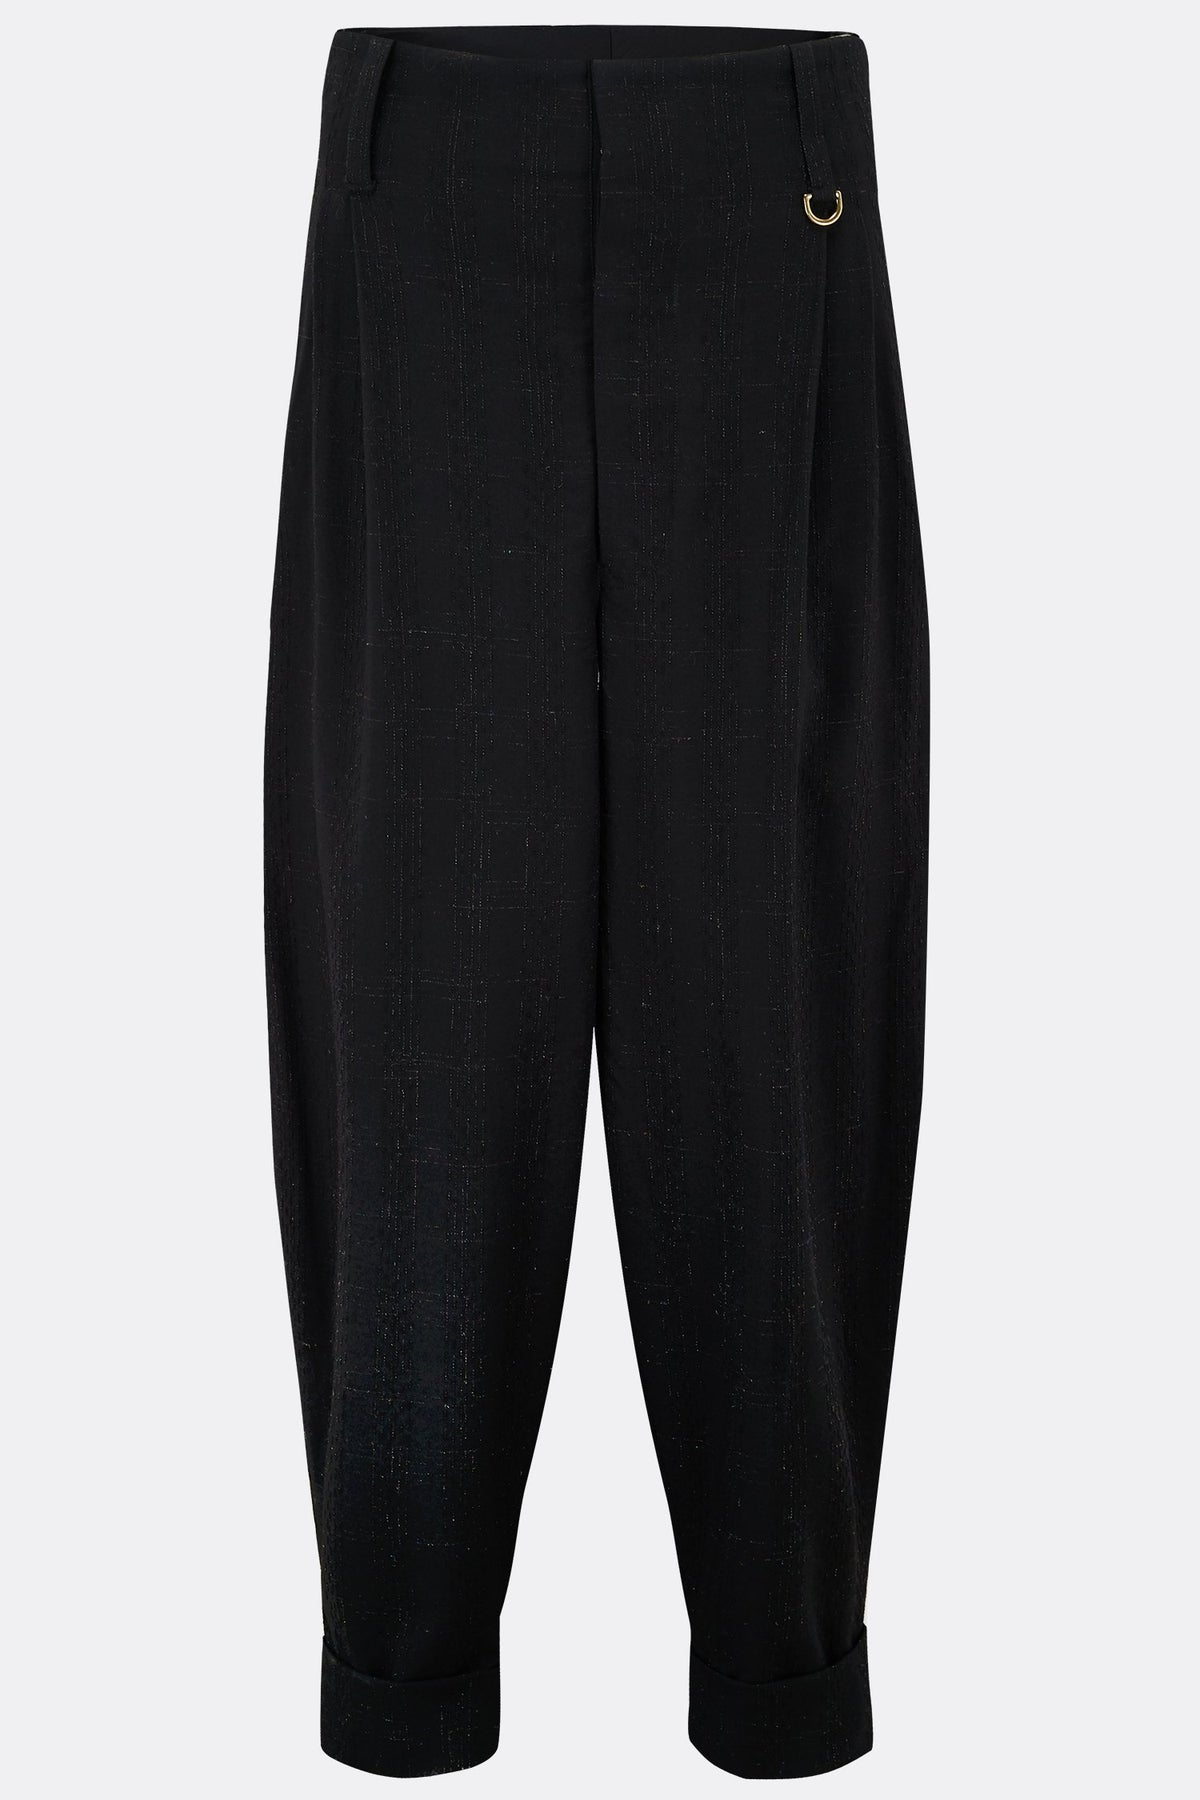 DILLINGER TROUSERS IN BLACK WOOL-menswear-A Child Of The Jago